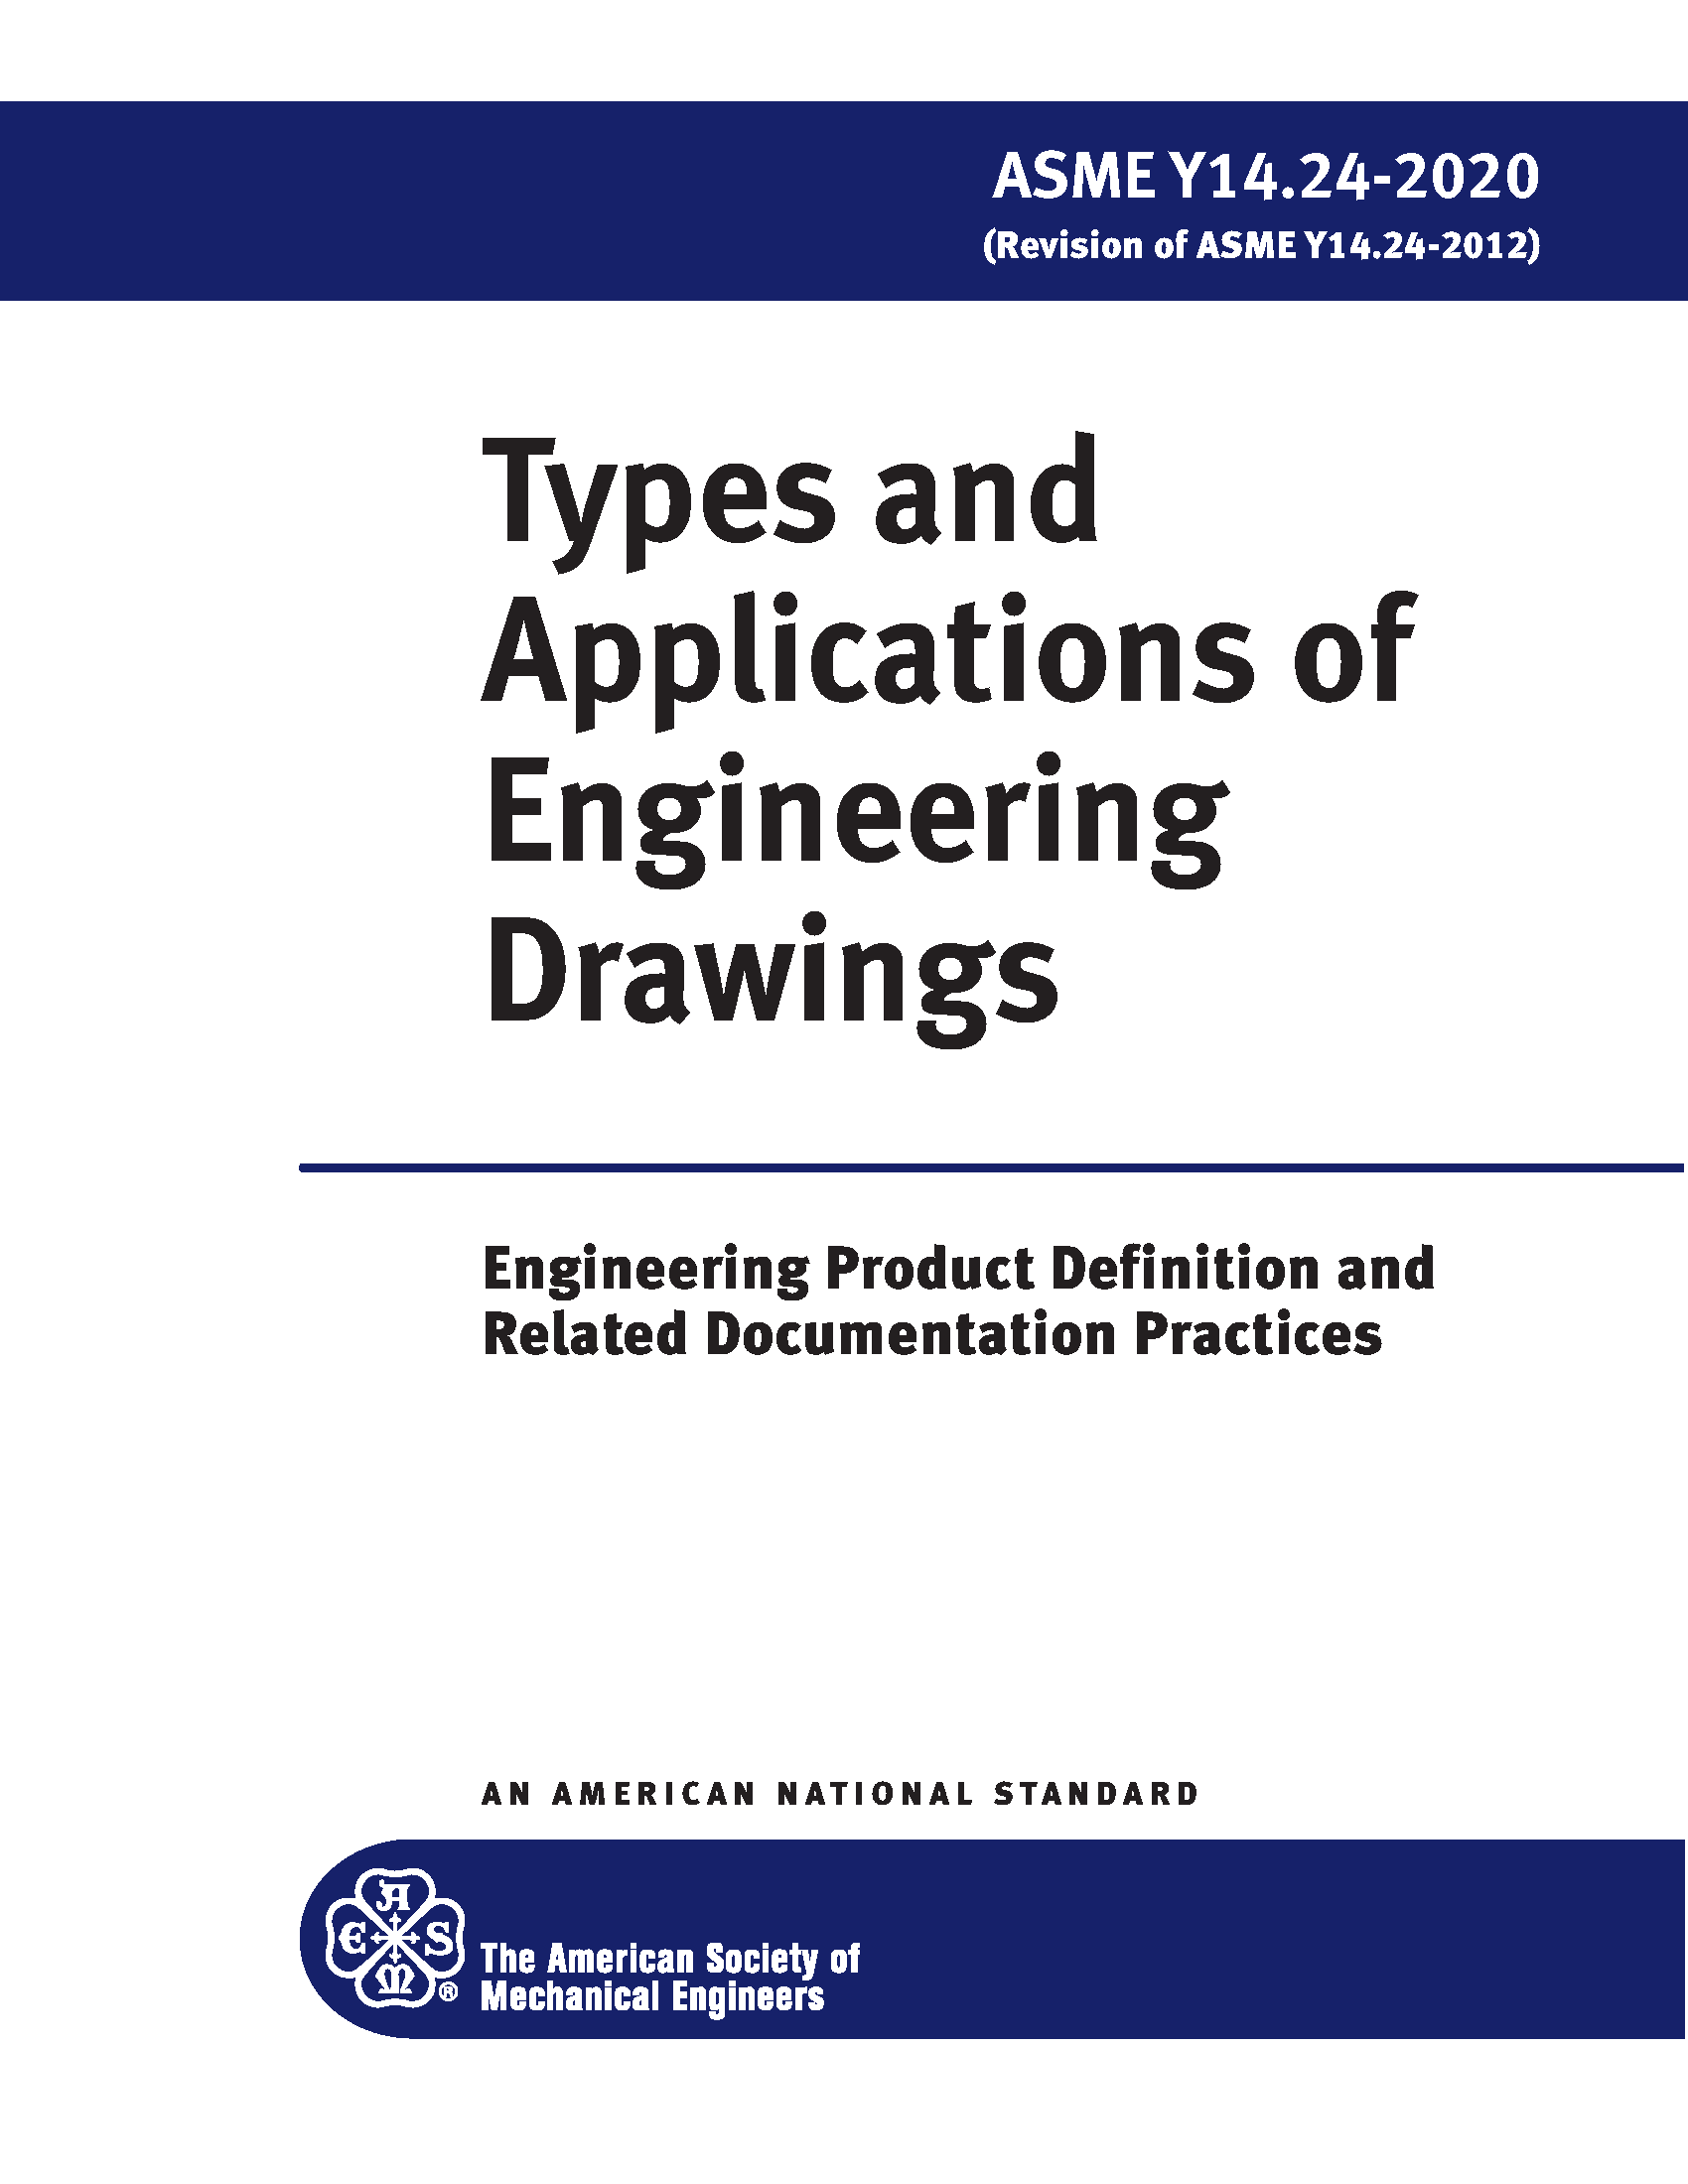 ASME Y14.24 2020 Types and Applications of Engineering Drawings Standard